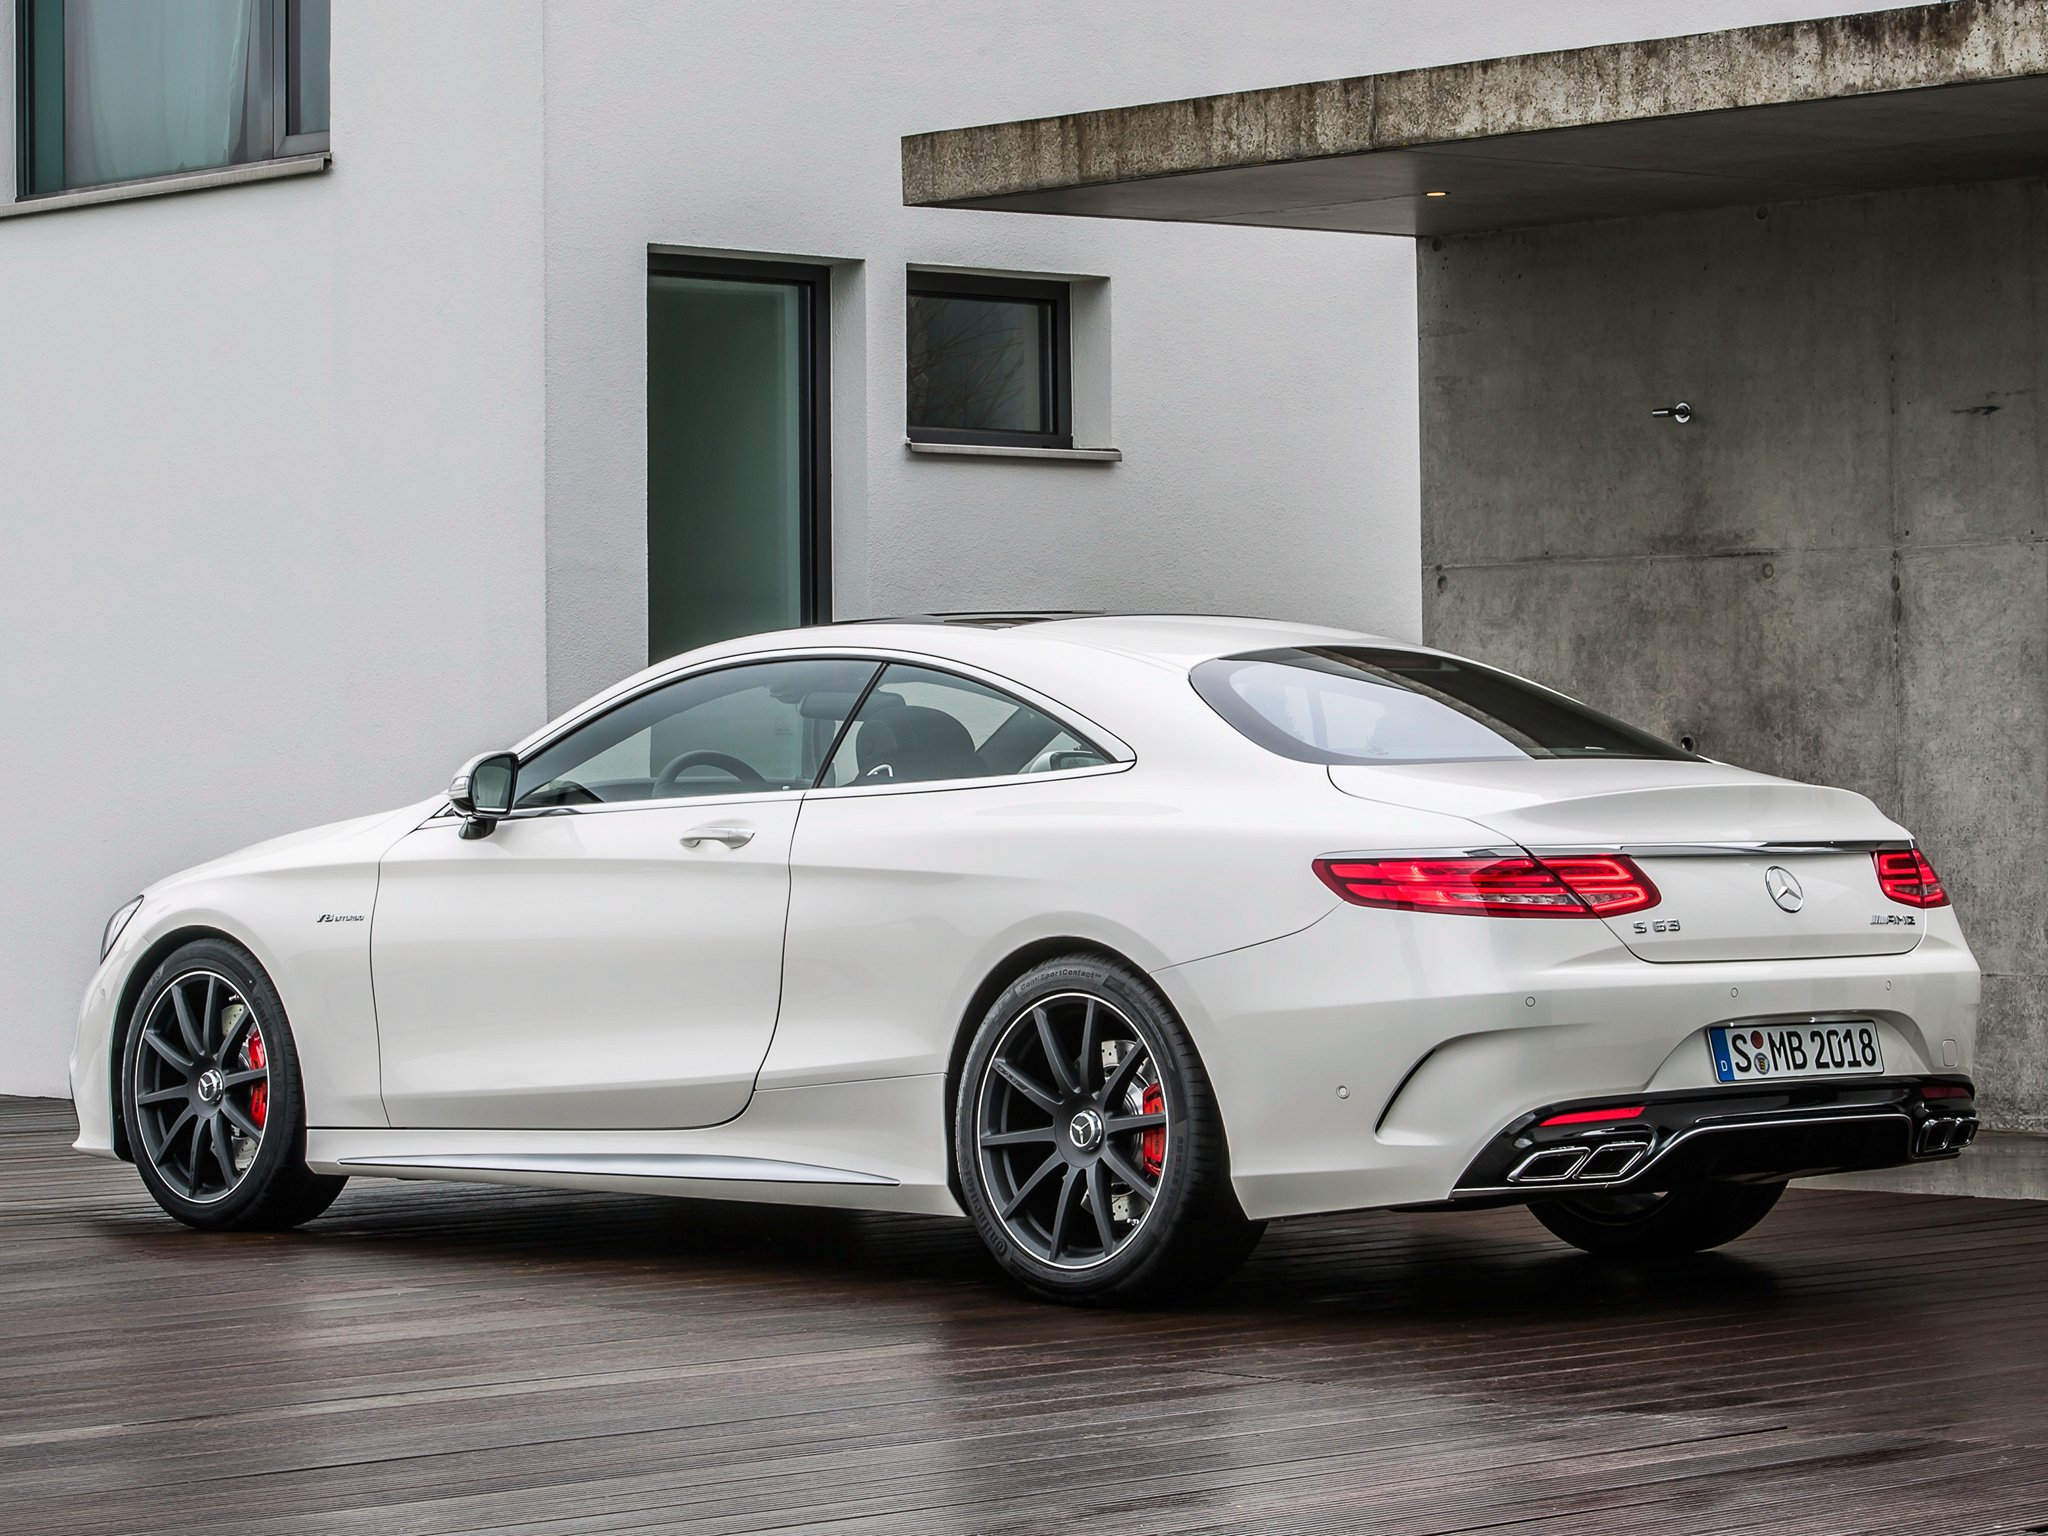 S 63 Amg Wallpaper: 2014 Mercedes Benz S63 AMG Coupe C217 W Wallpaper